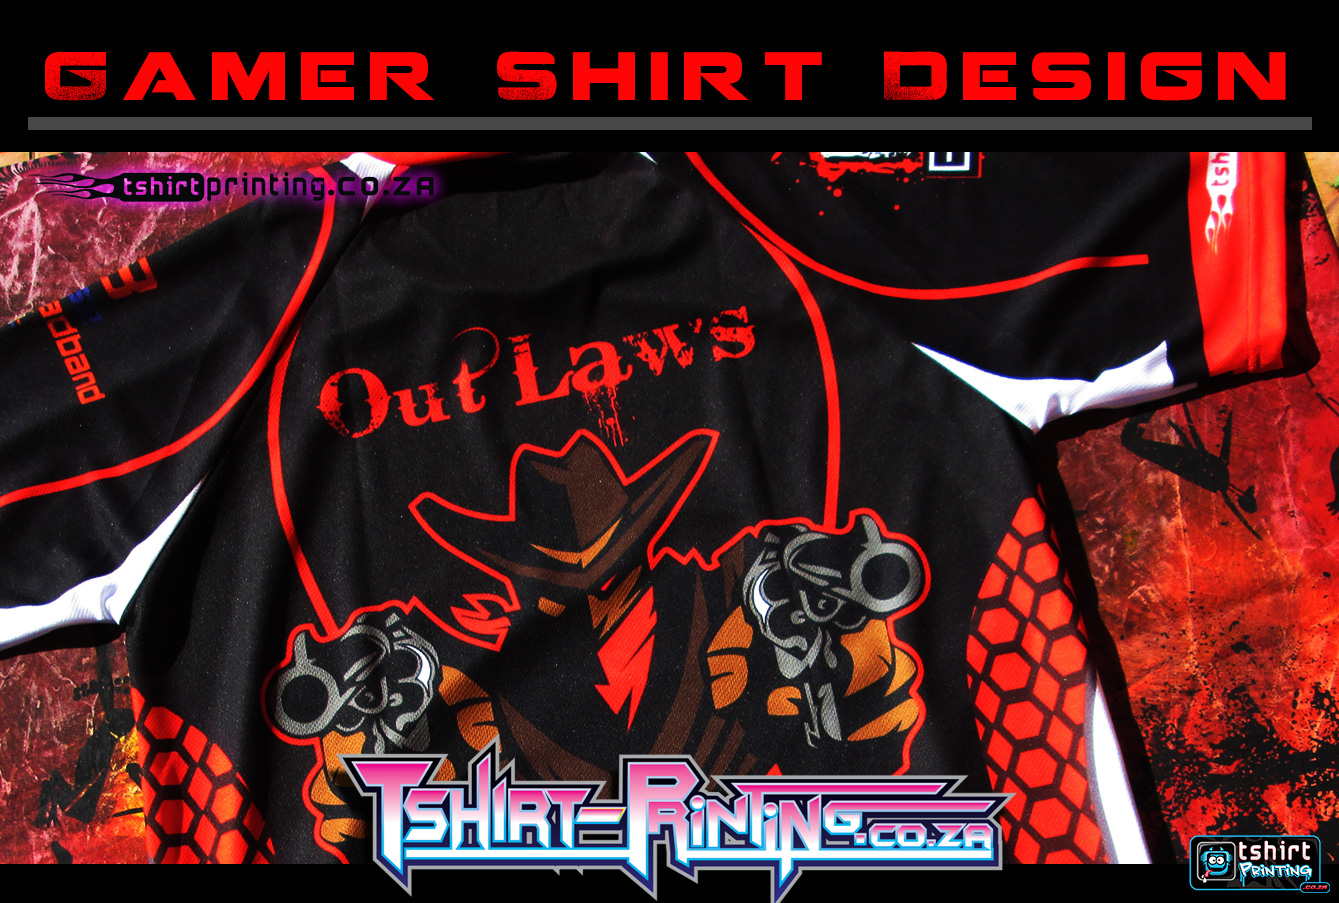 gamer-shirt-design-prnted-shirt-outlaws